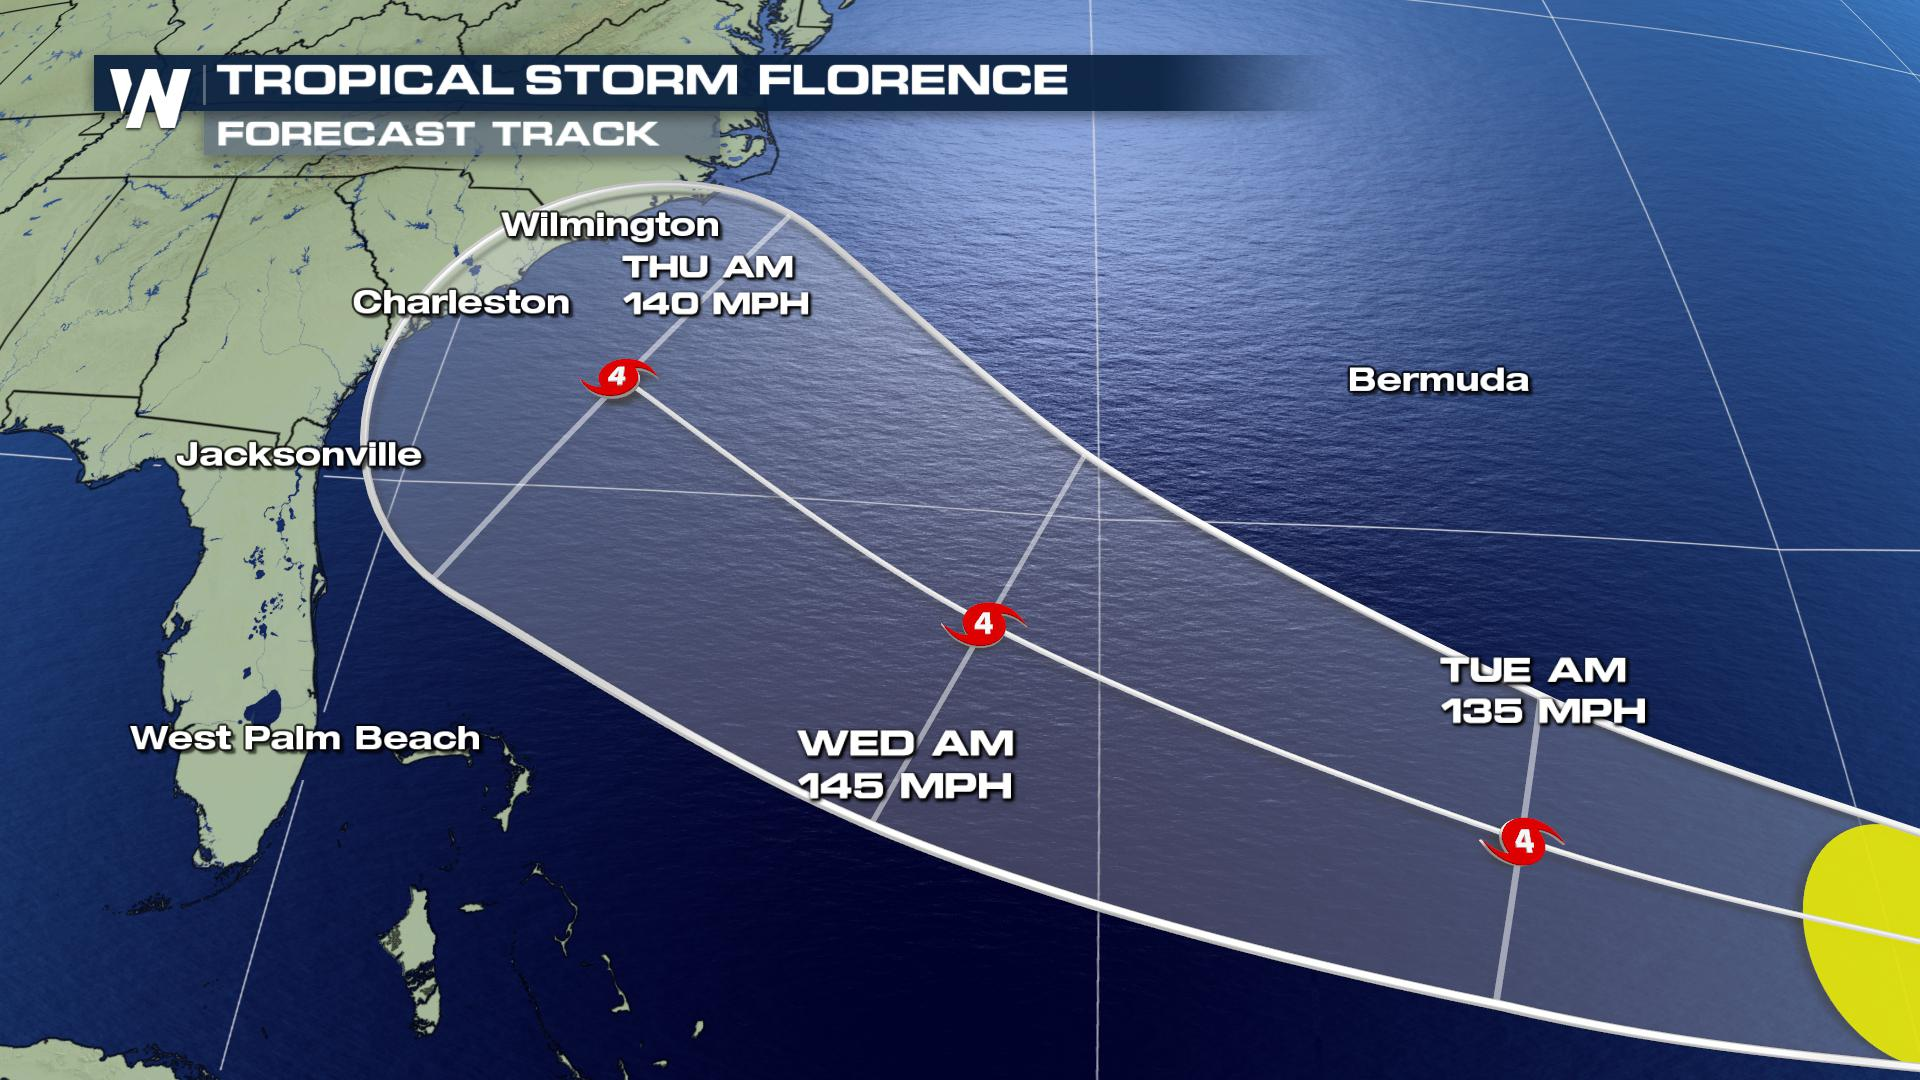 Heads Up - An Increasing Risk of Florence Directly Impacting